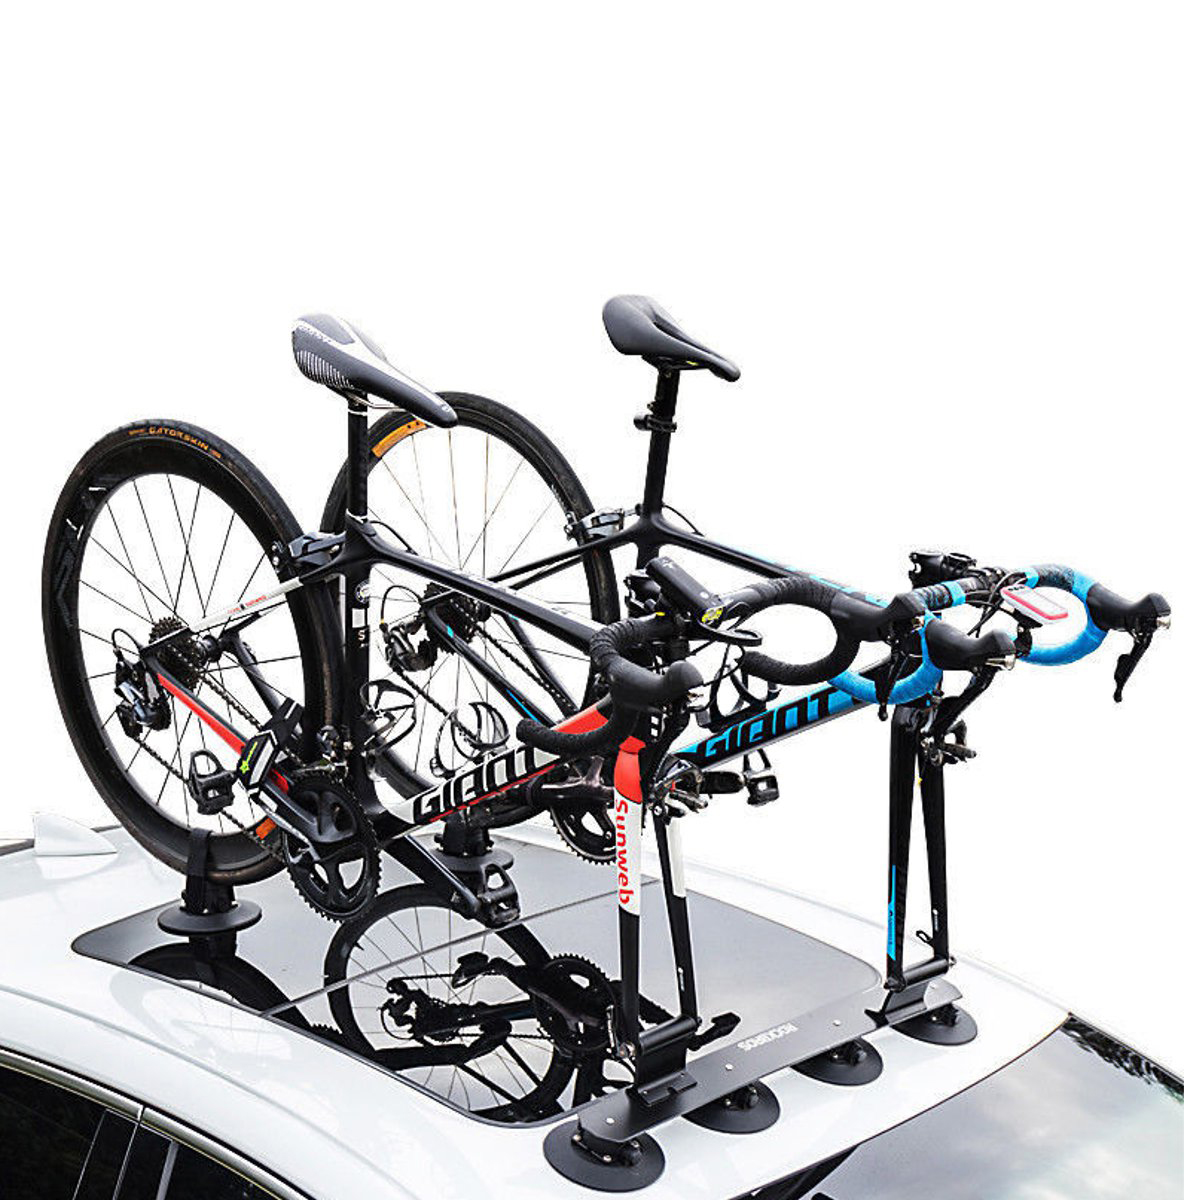 RockBros Bike Bicycle Carrier Suction Rooftop Roof Rack Quick Installation Roof Rack